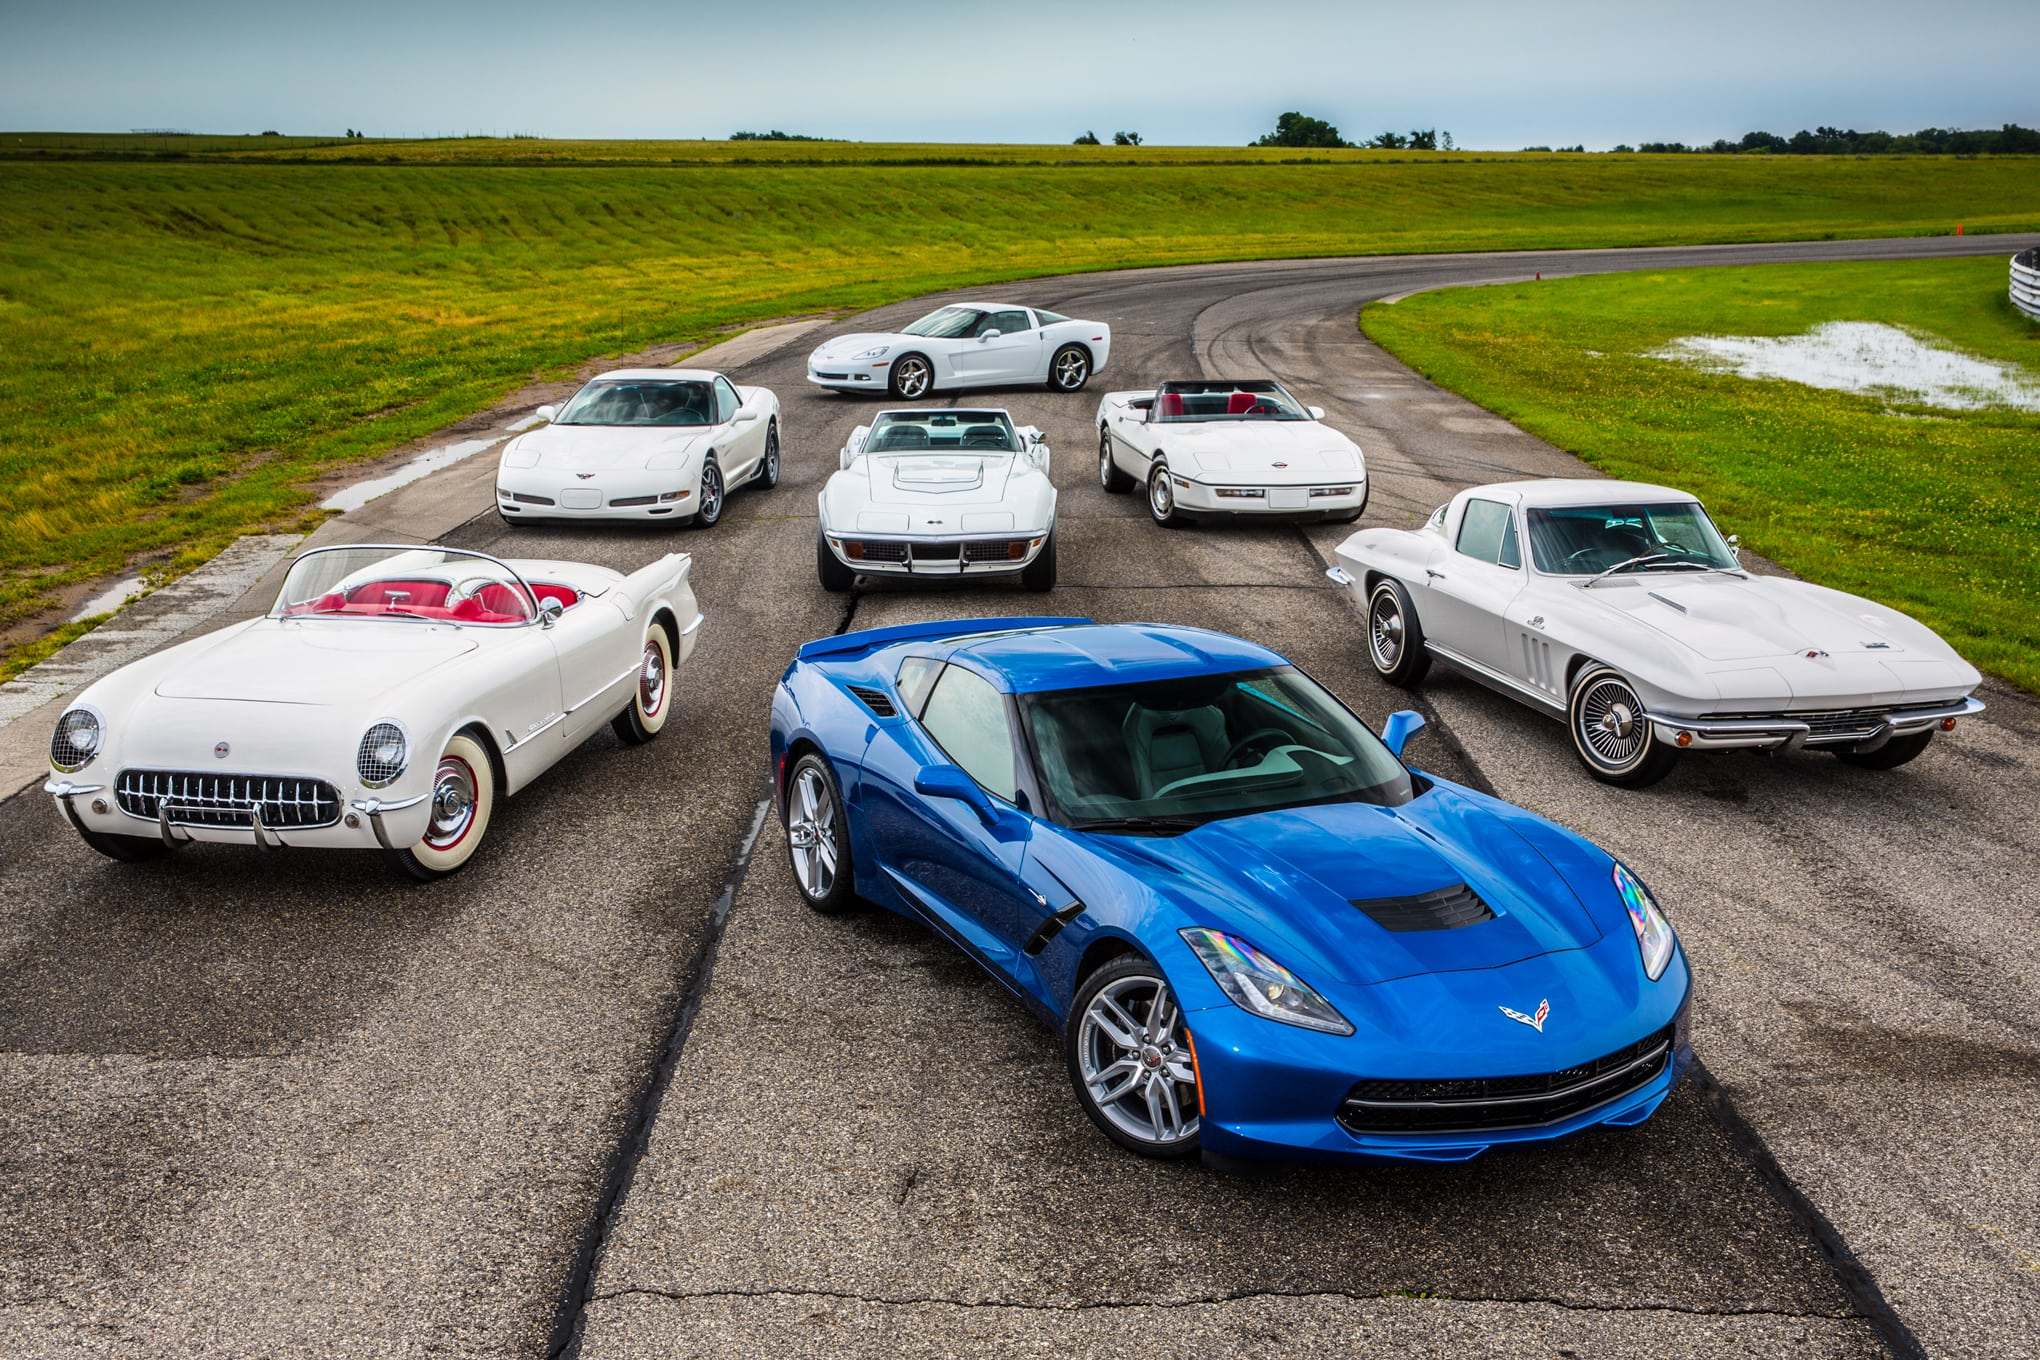 Corvette Stingray blue all seven generations.